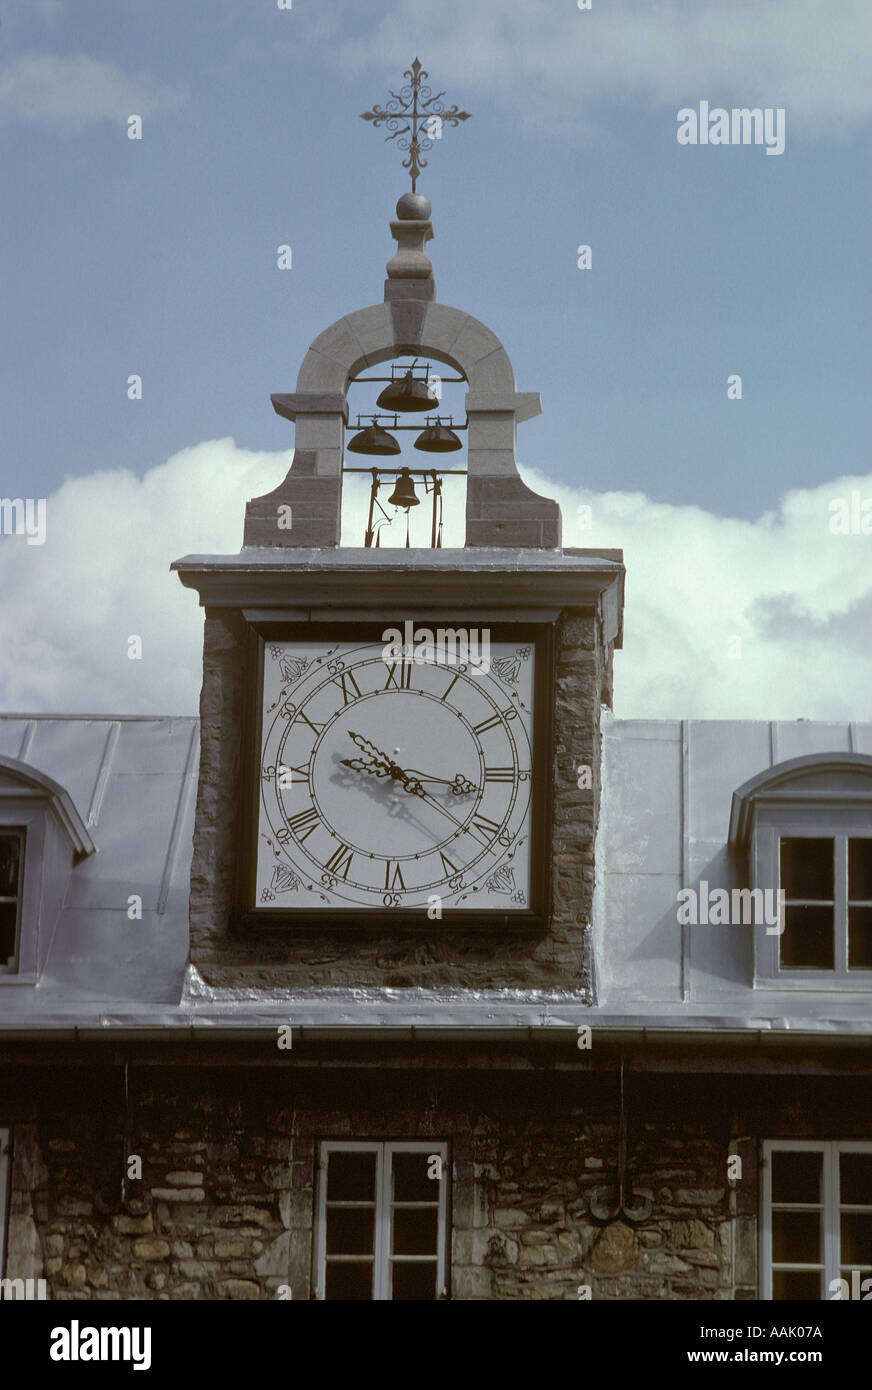 Oldest clock Sulpician Seminary Montréal QC extensive collection of Montreal images available  Stock Photo